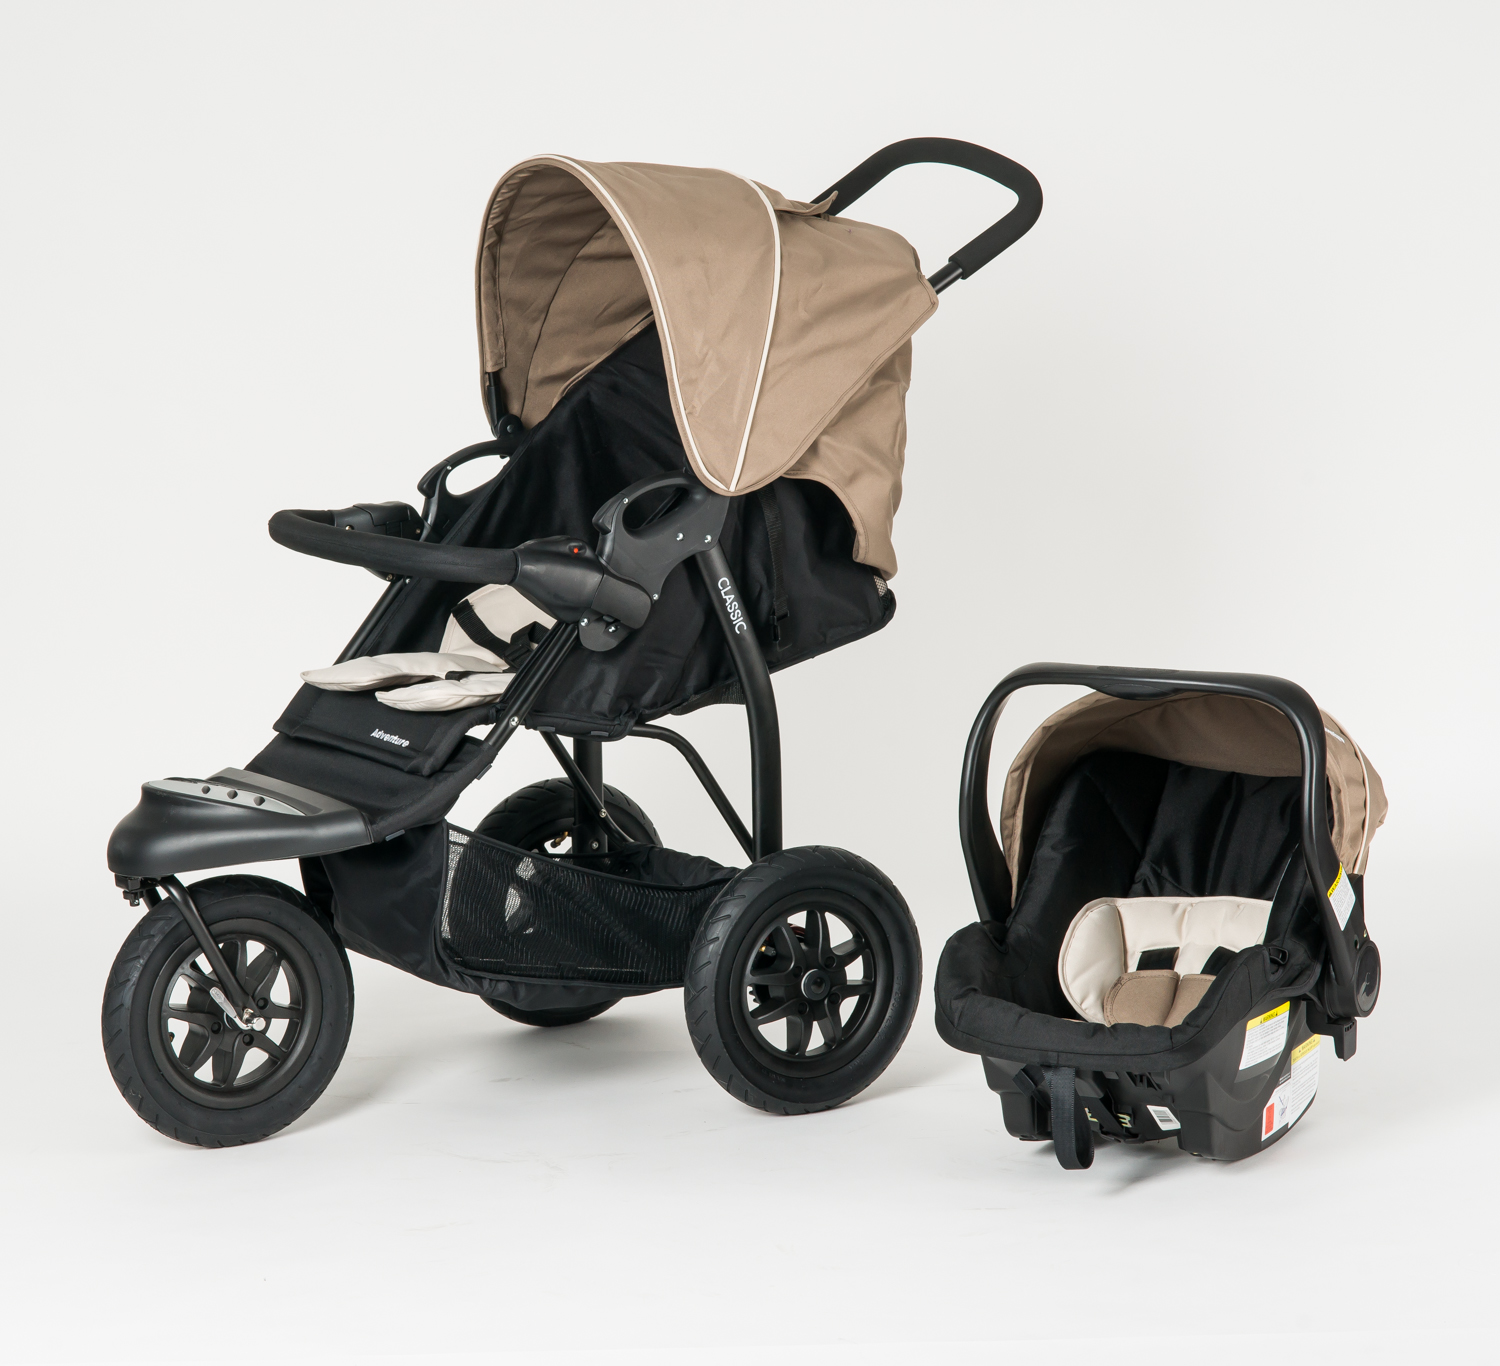 f9f2384508 The Adventure Classic is a sturdy infant to toddler buggy that includes an  ergonomically designed car seat capsule as part of the package.